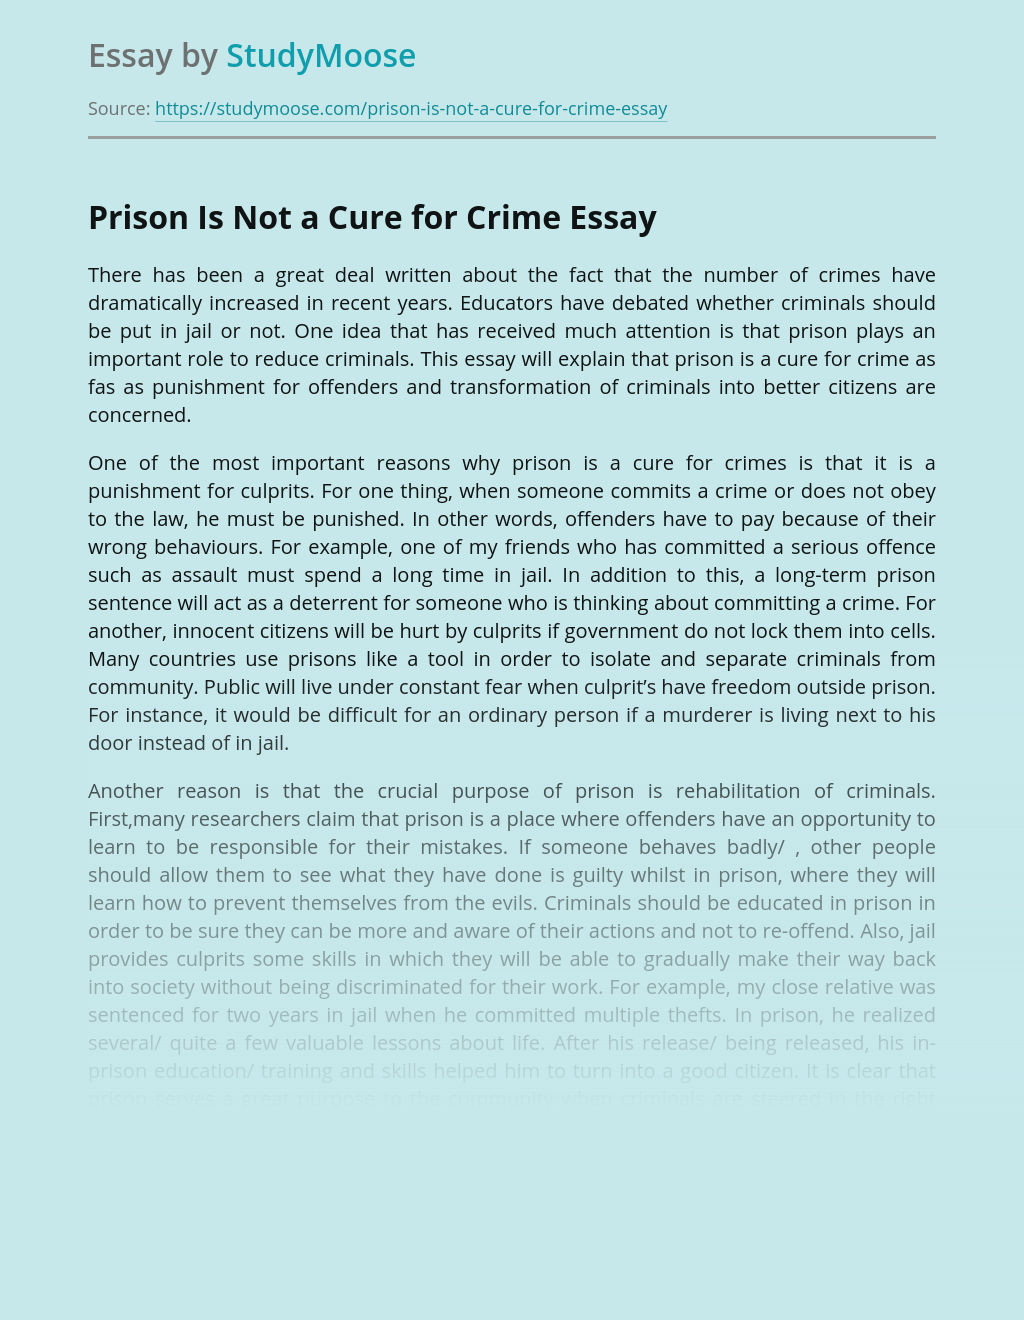 Prison Is Not a Cure for Crime